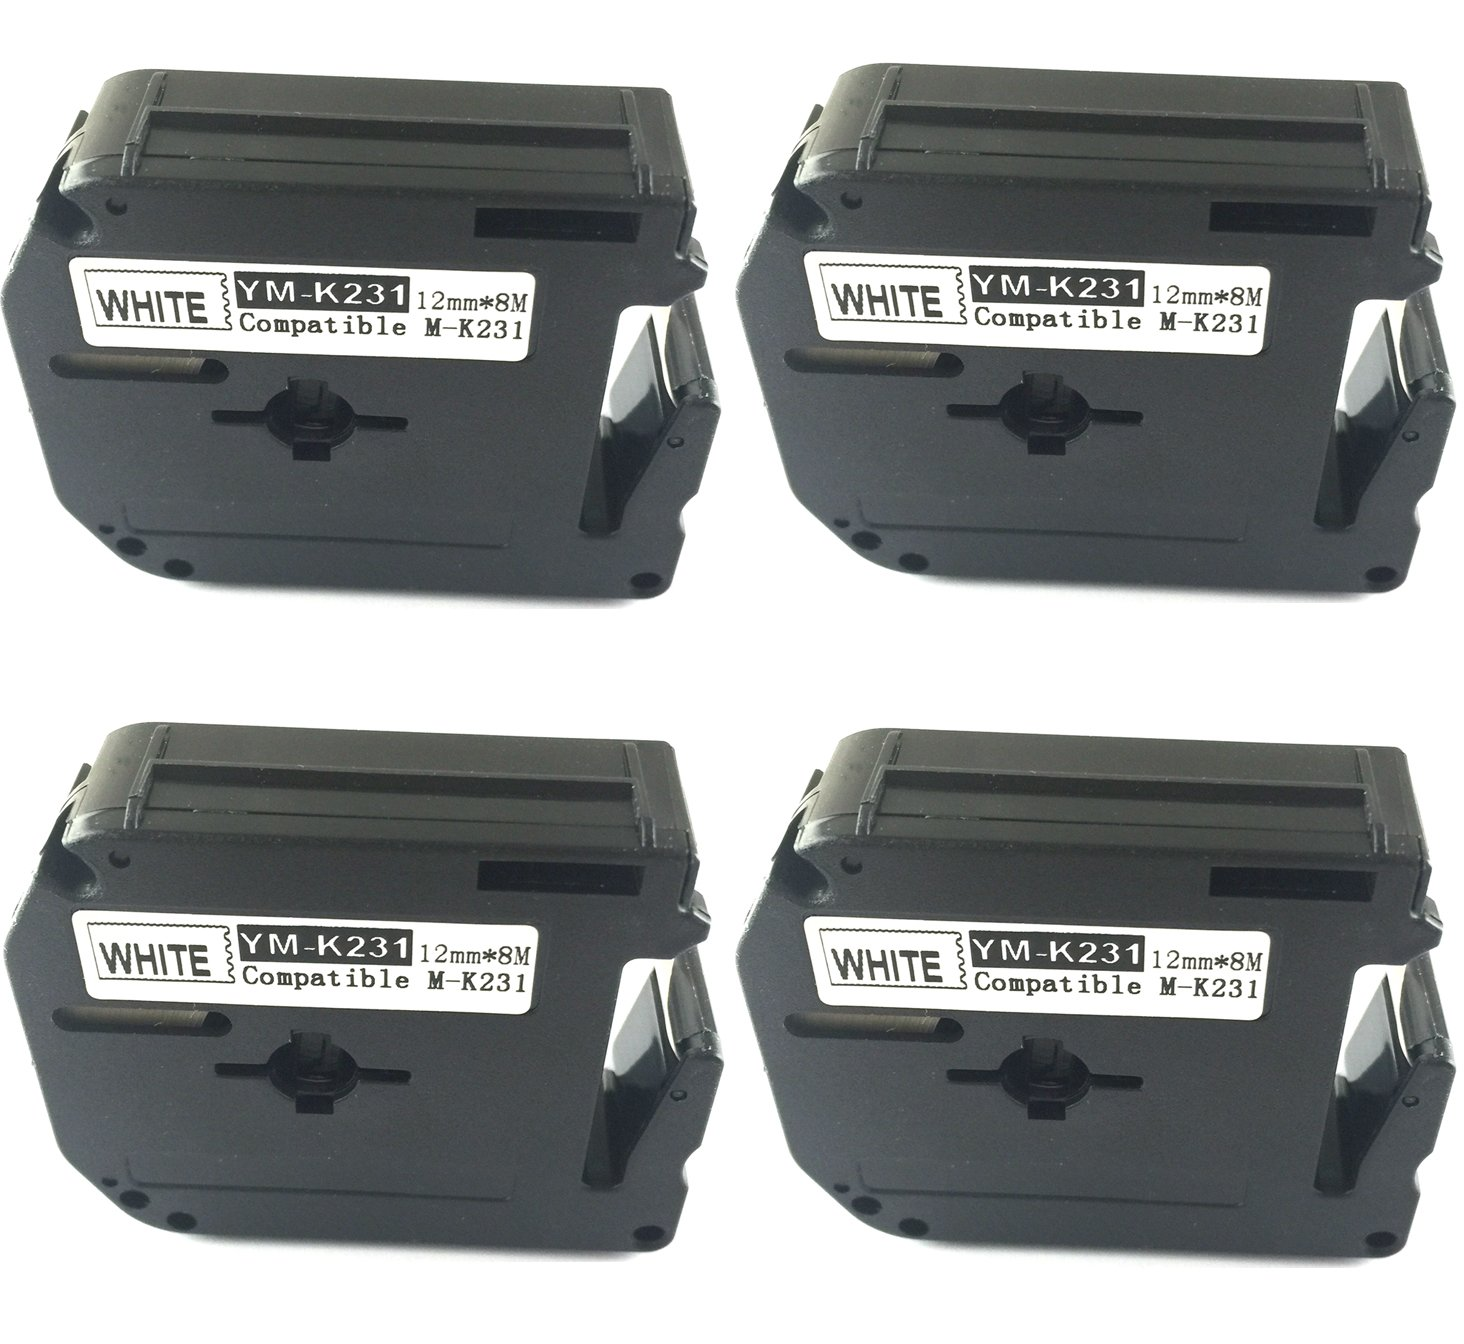 NEOUZA 4PK compatible for Brother P-touch Labeler M231 M-K231 MK231 WHITE Tape PT-45M PT-55BM PT65, PT85 ACD.auto